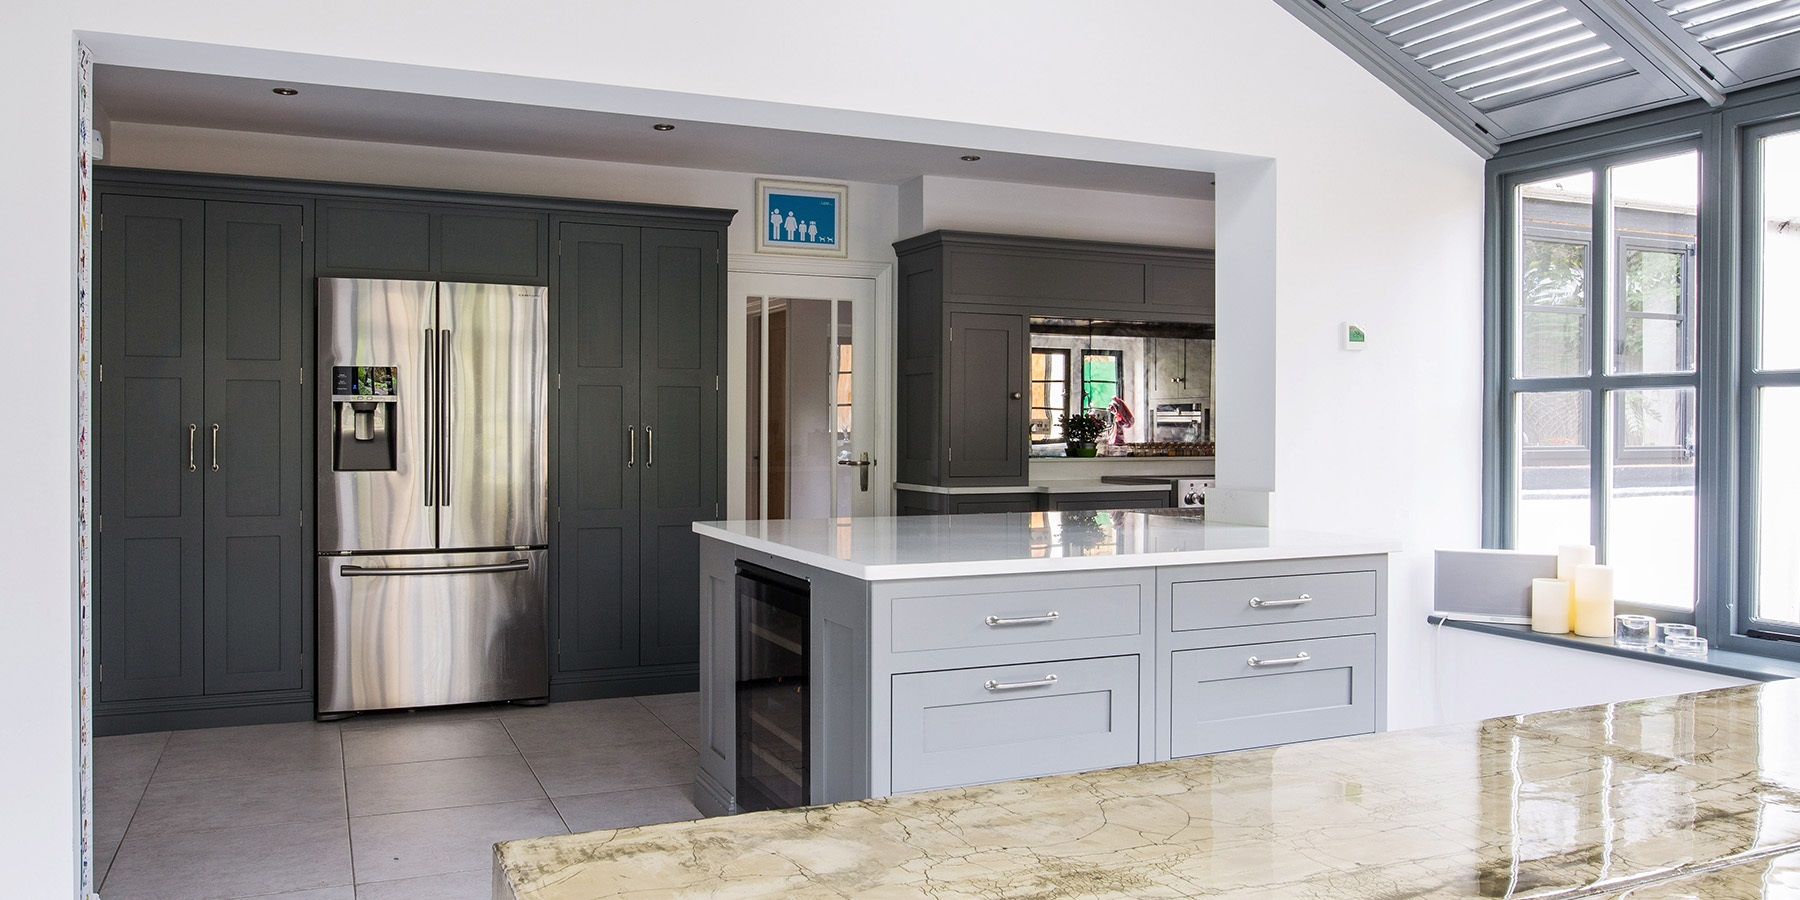 Bespoke Modern Kitchen  - Burlanes handmade Hoyden kitchen, with large larder units, white worktops and kitchen island.